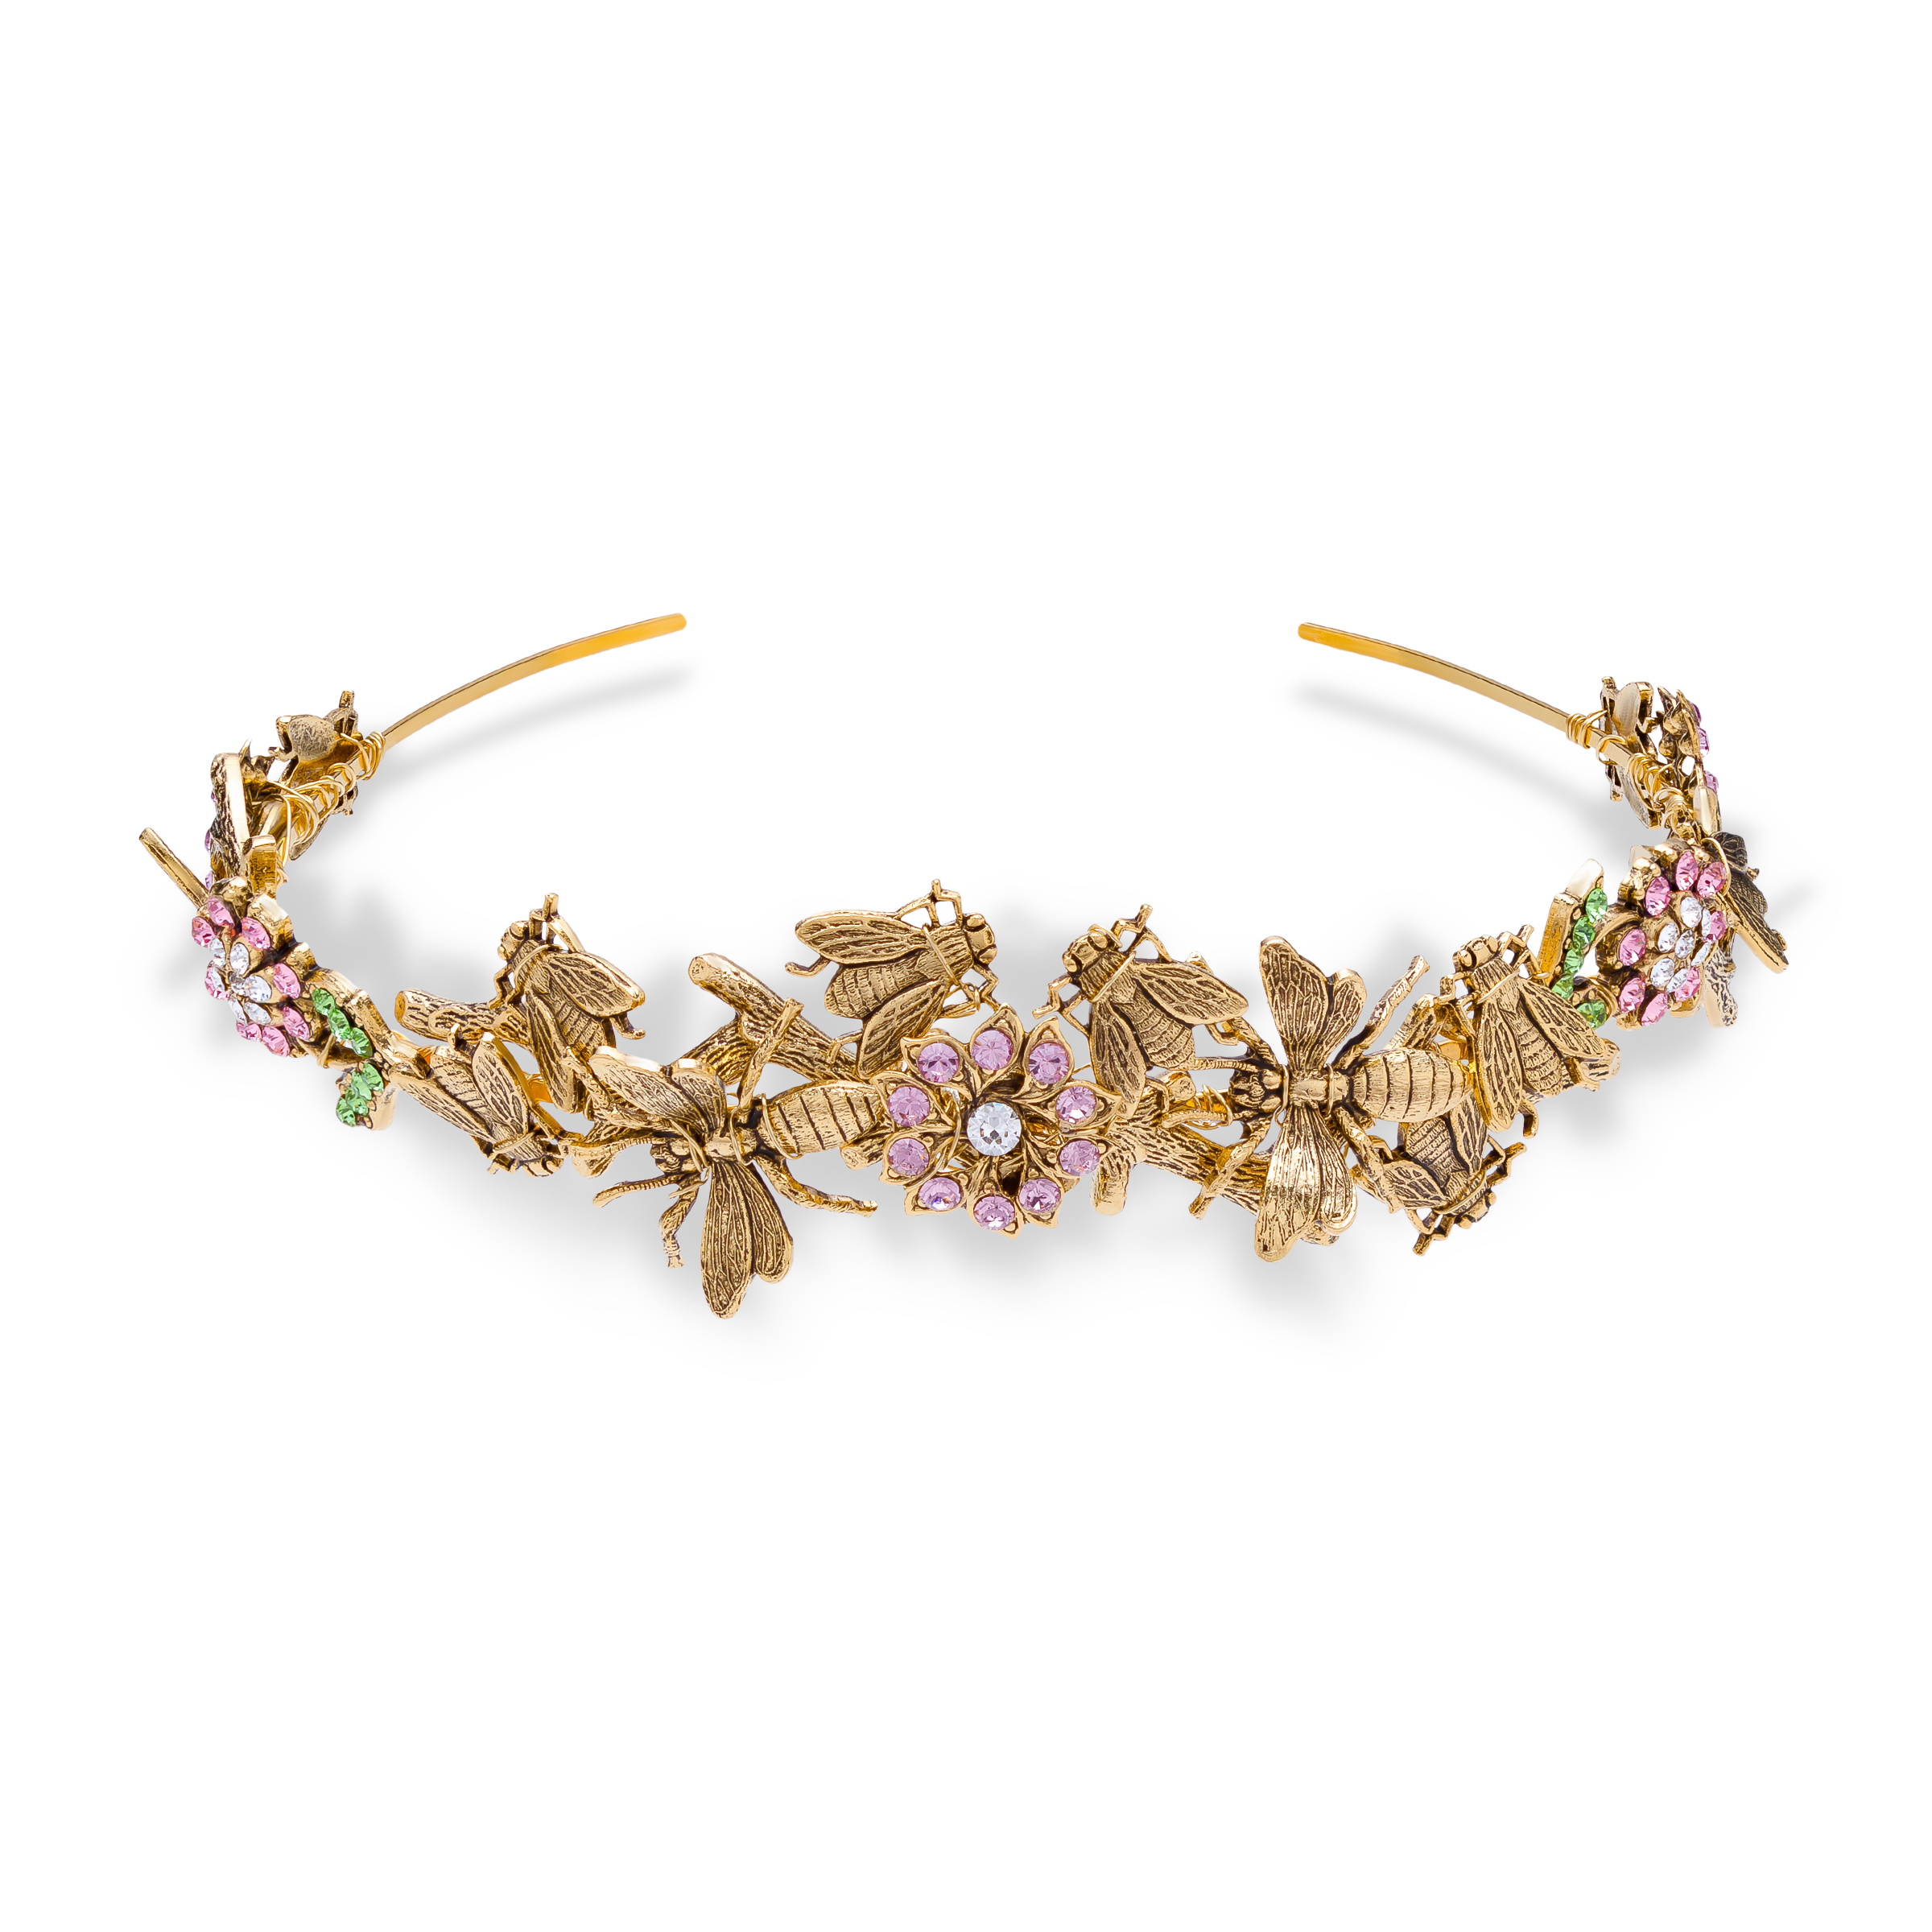 Golden tiara product photo